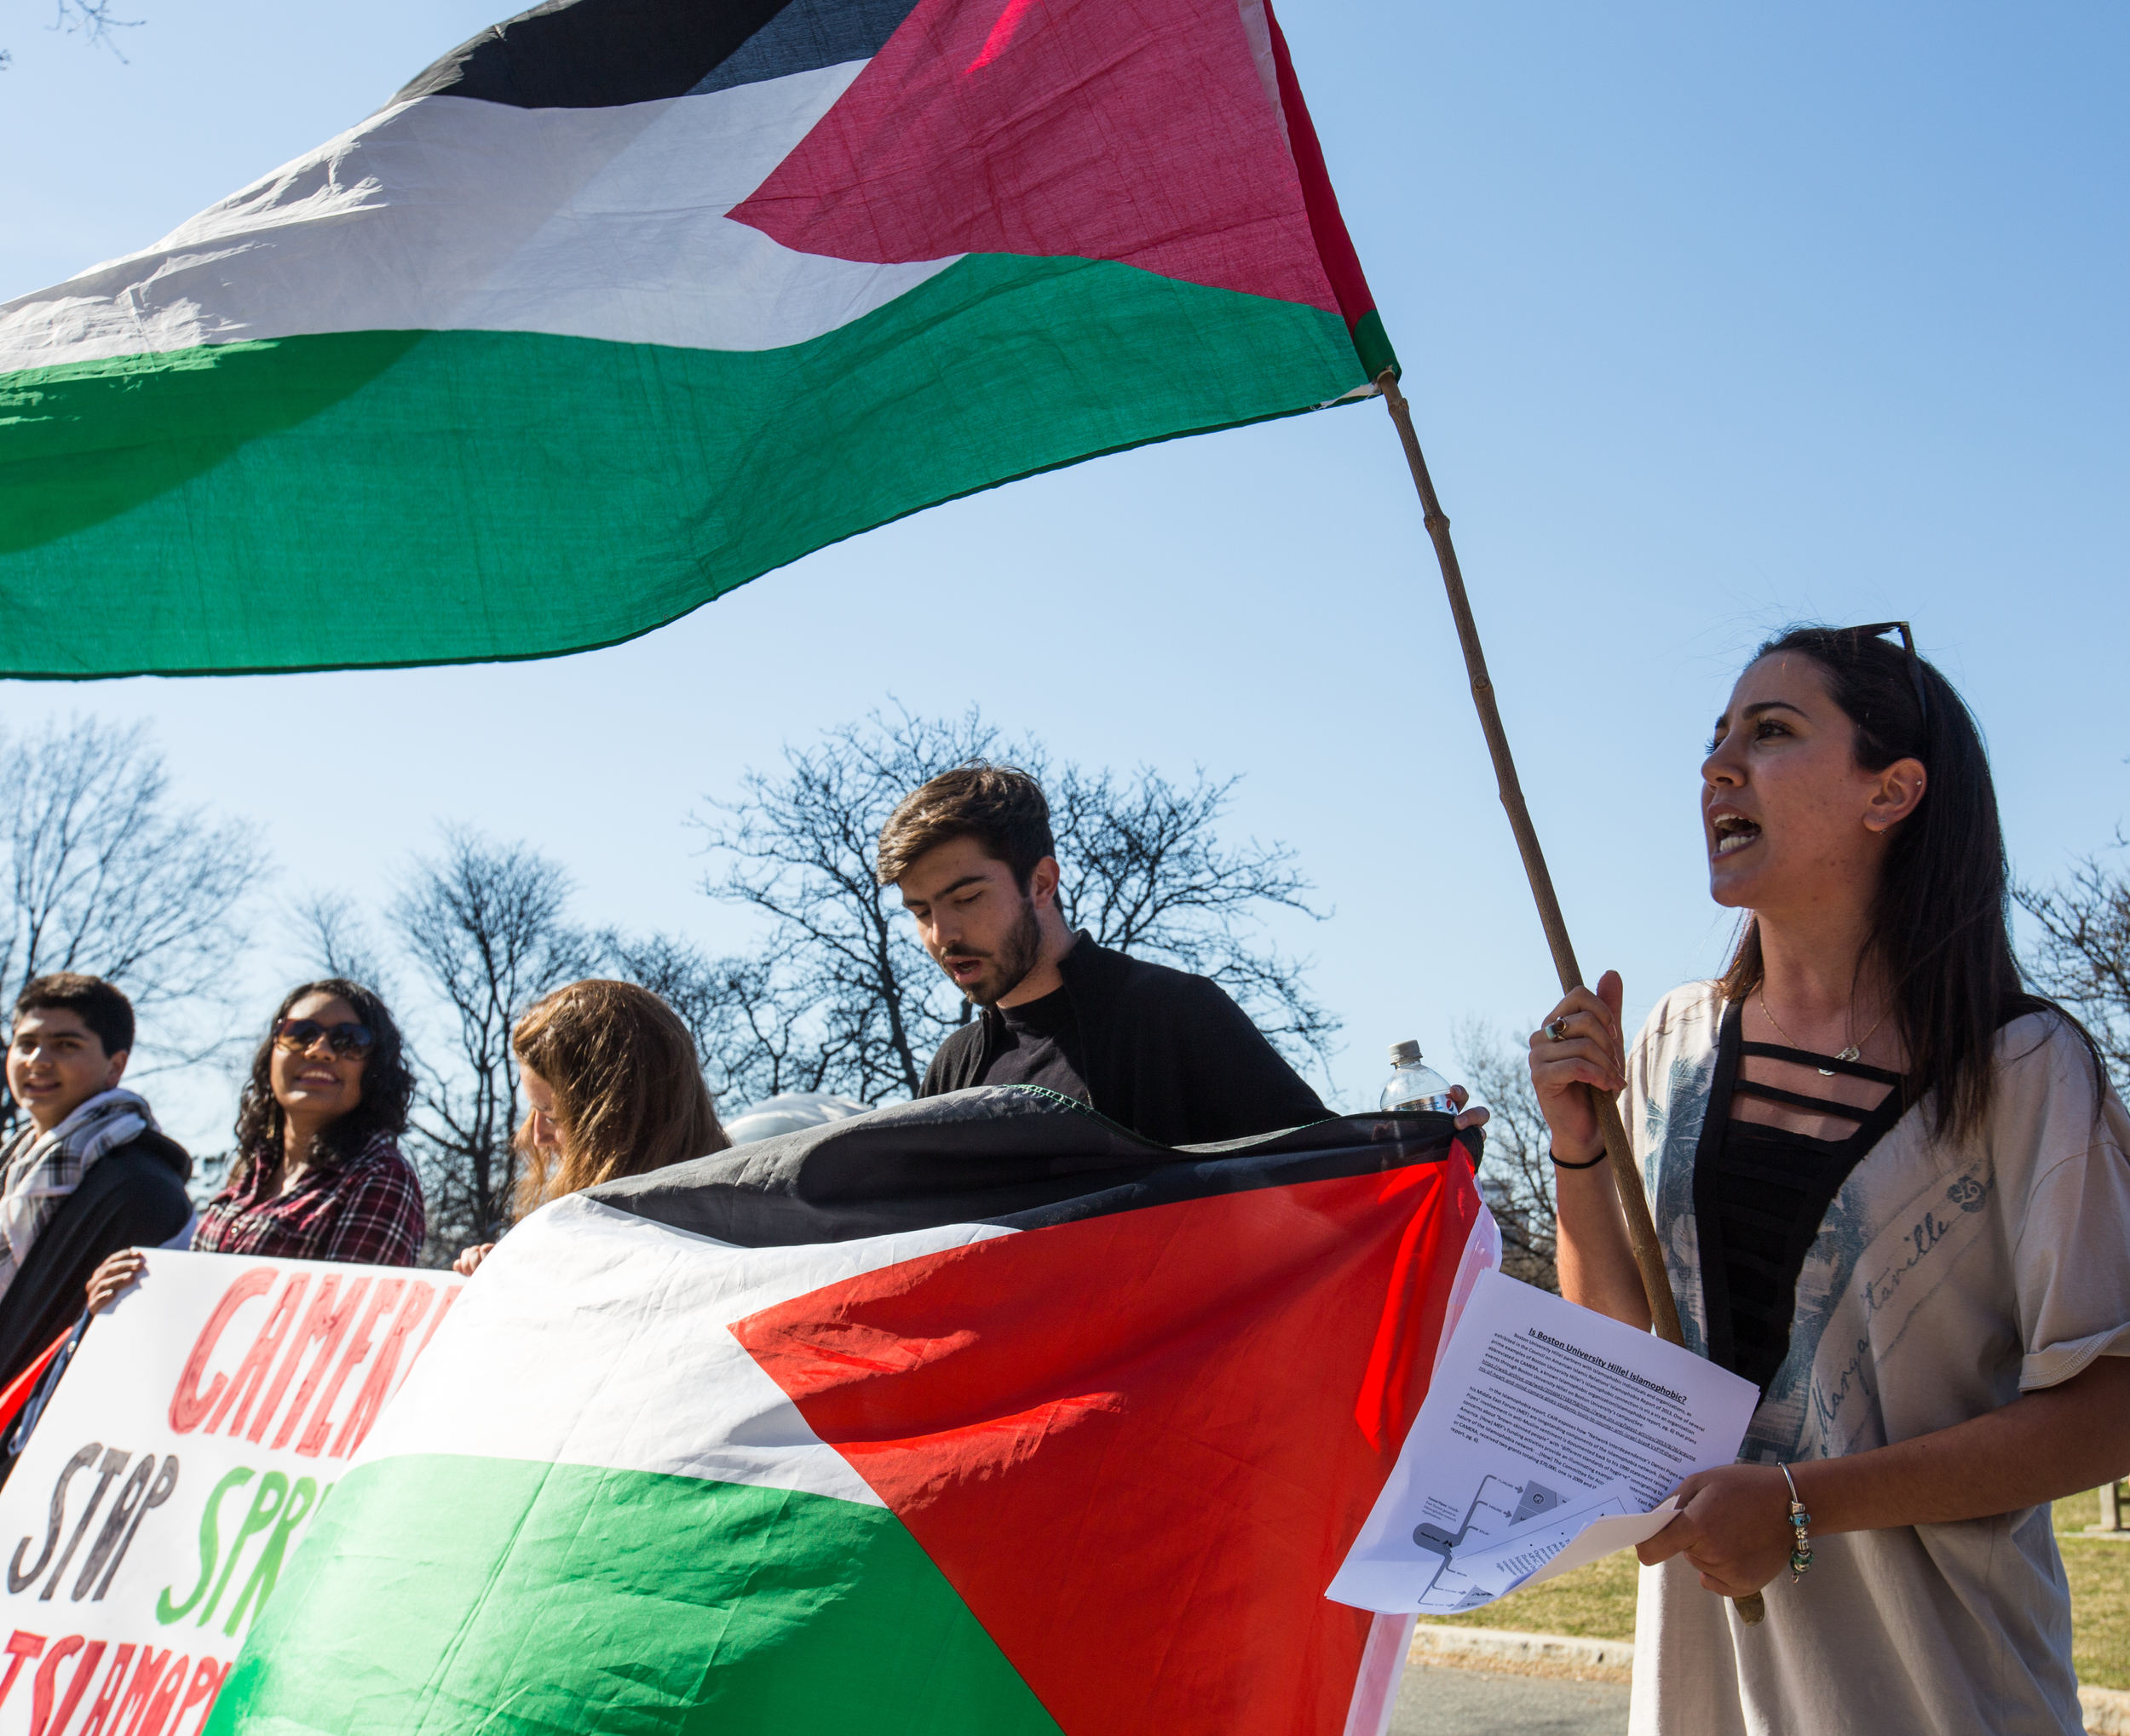 Boston Students for Justice in Palestine members march in front of Marsh Chapel on the Boston University Beach.